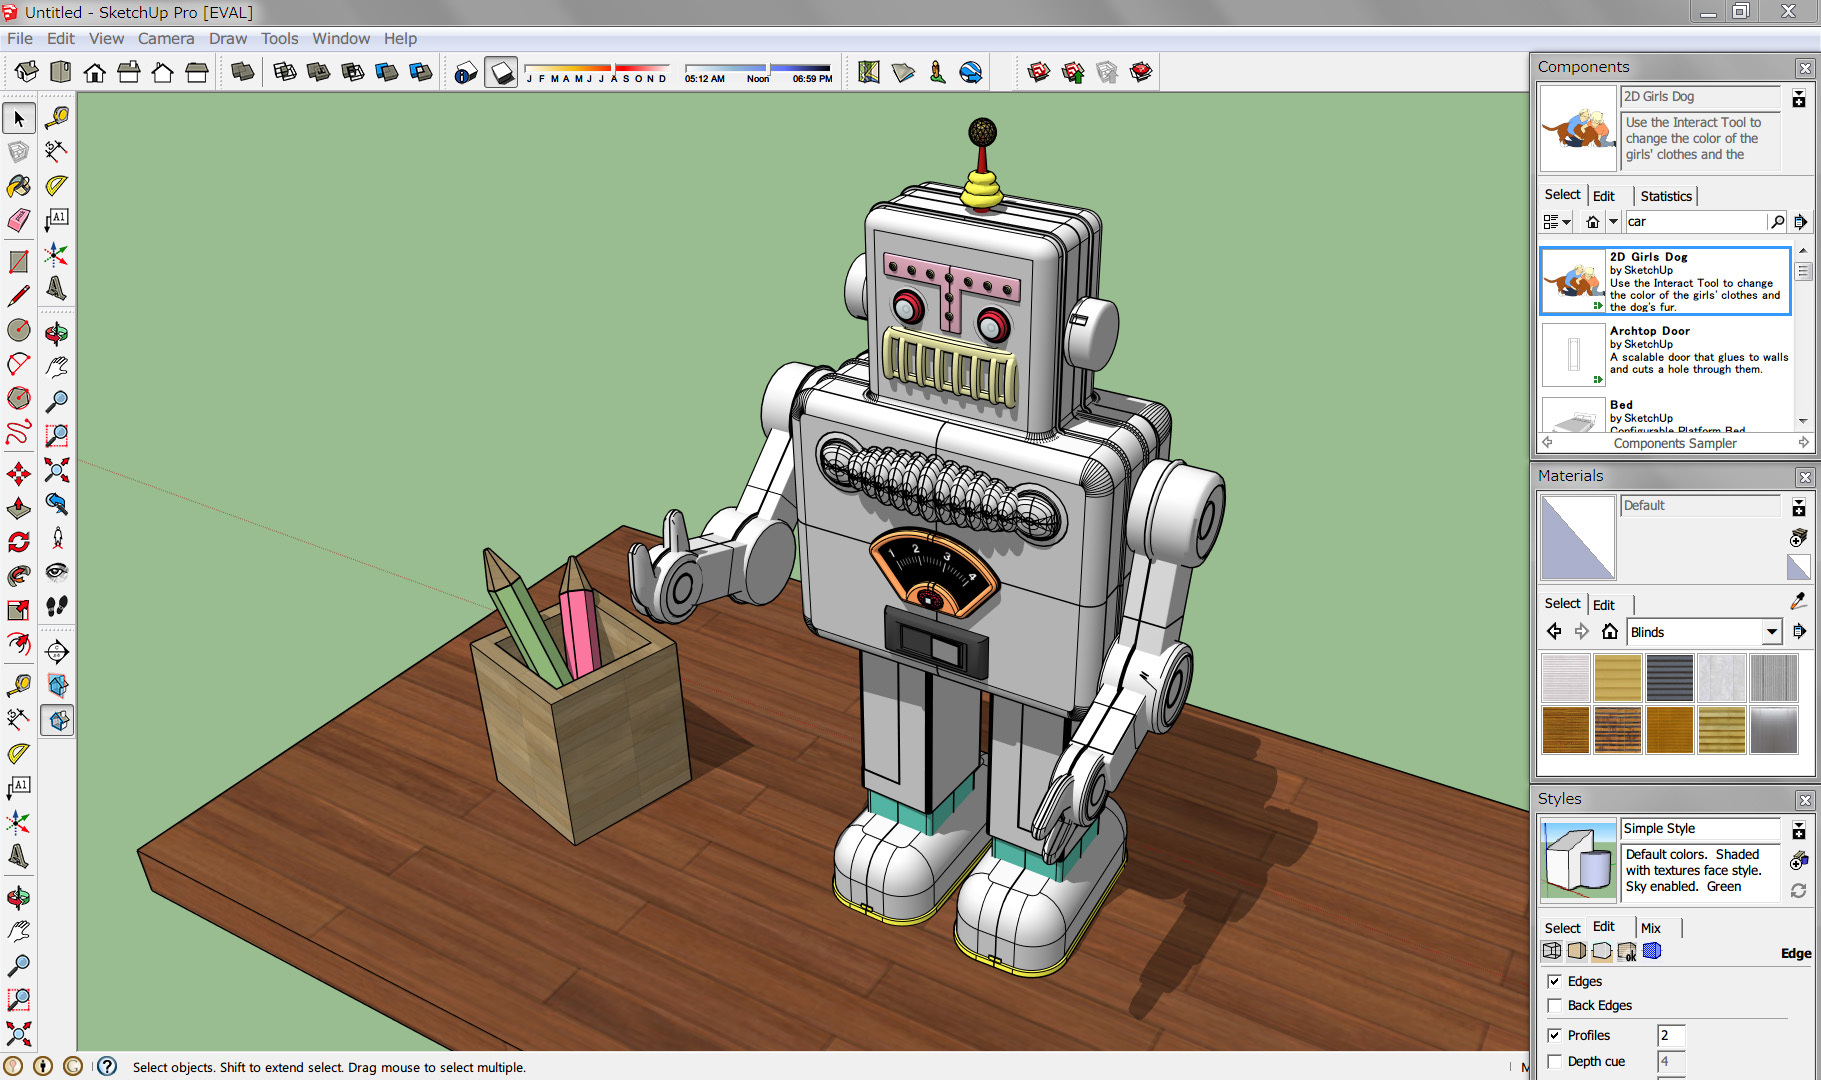 10 Awesome Sketchup Plugins That Will Up Your Modeling Game (Explained With GIFs)